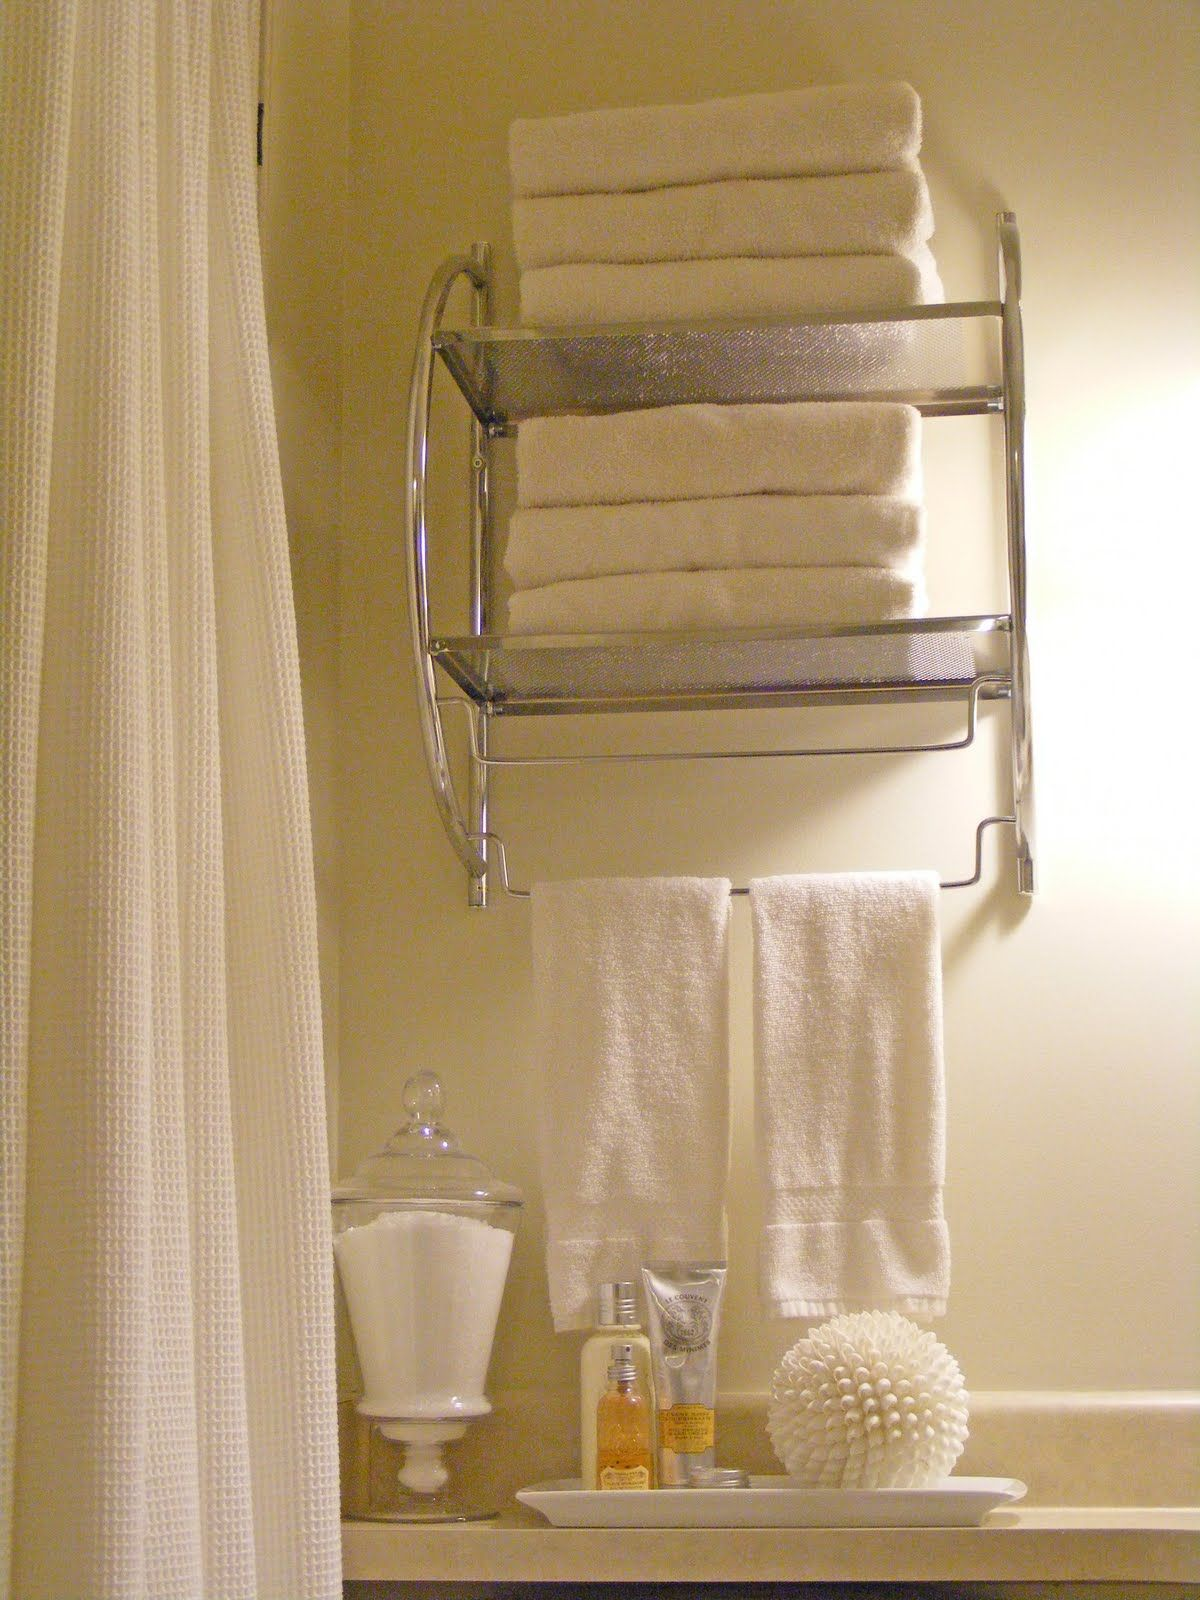 Mini Manor Blog Bathroom Towel Storage Towel Holder Bathroom Bathroom Towels